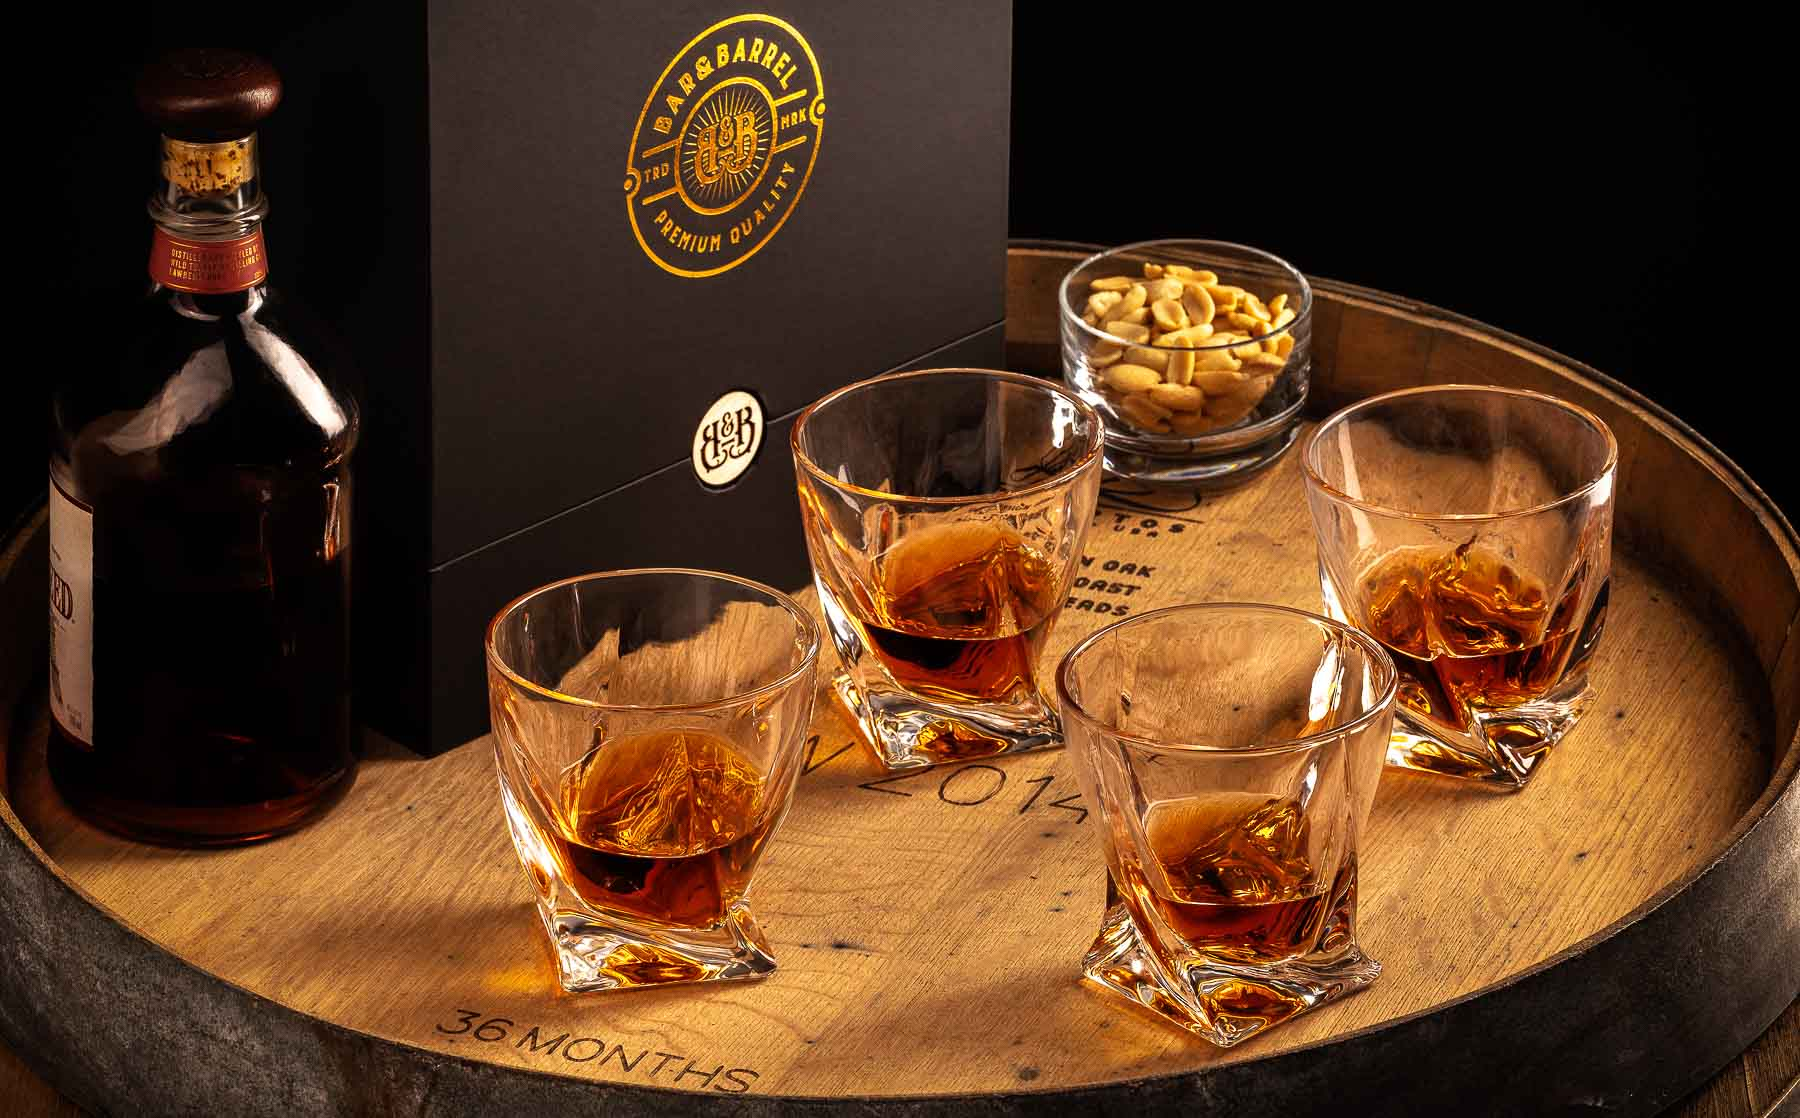 Bar&Barrel Whisky Cup group of 4 slim on barrel - Advertising product photography sample